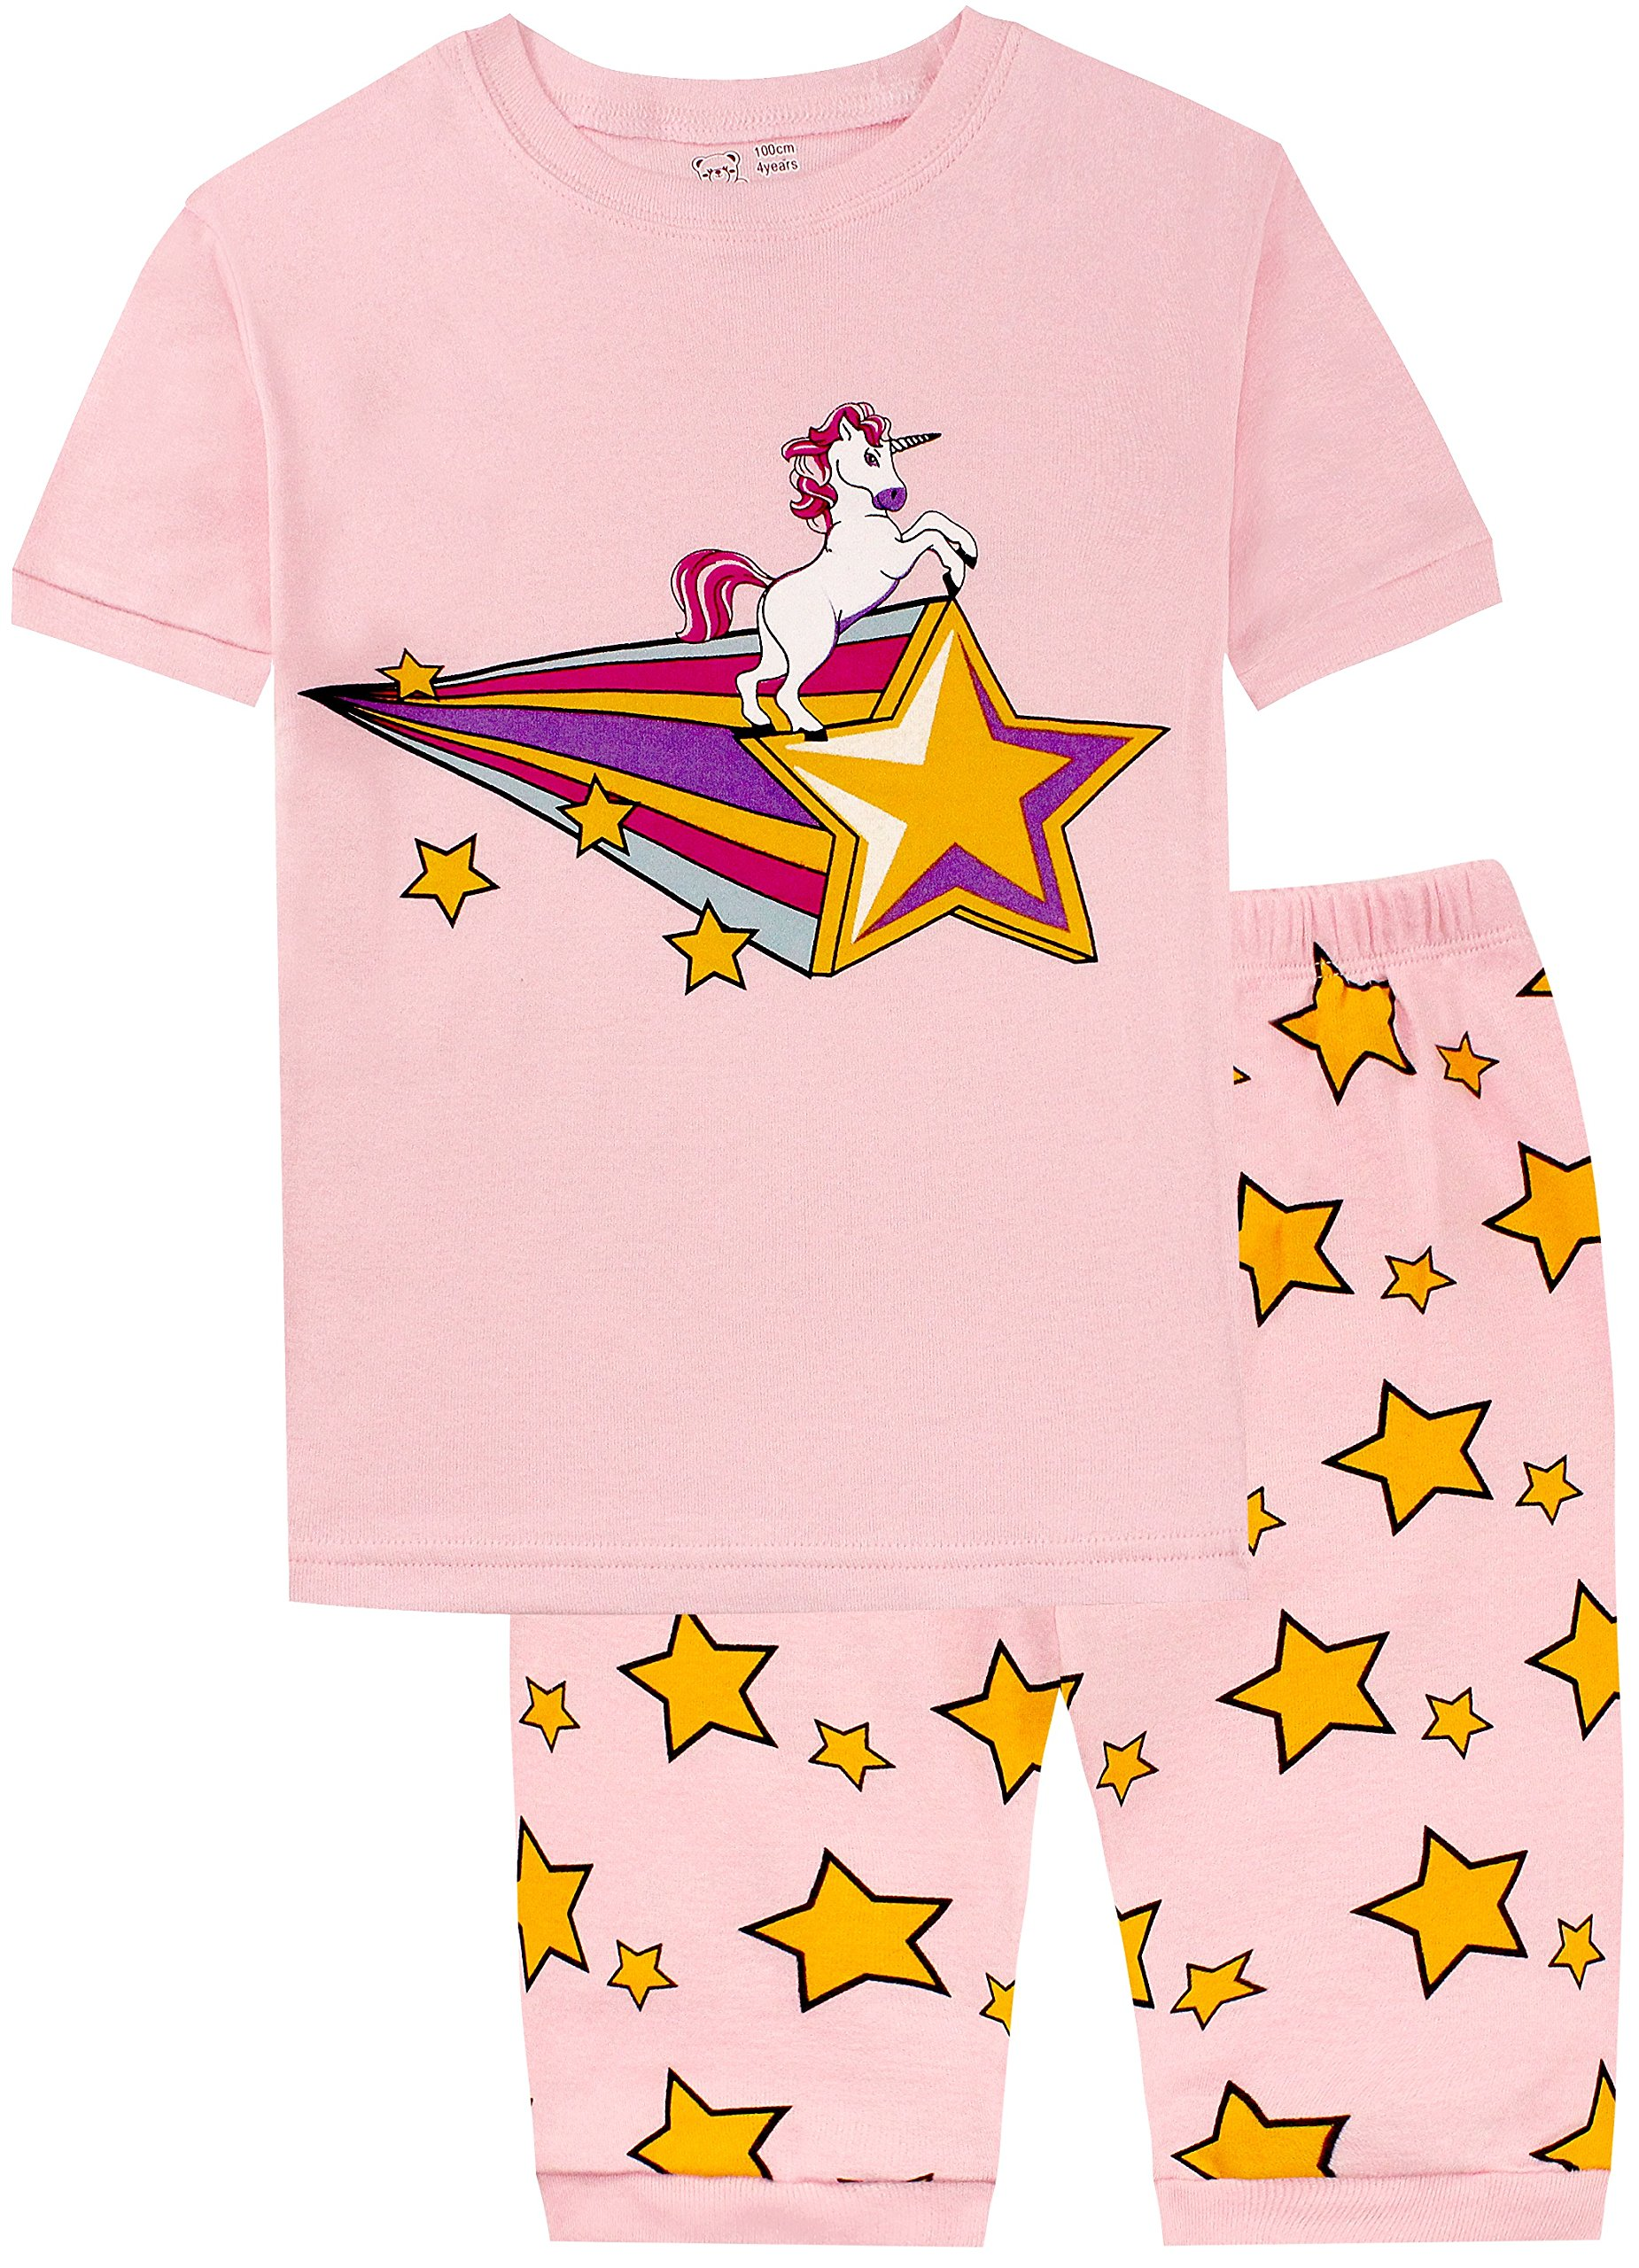 BebeBear Pajamas for Girls Toddler Shorts Unicorn Girls Star Print PJ Sleepwear